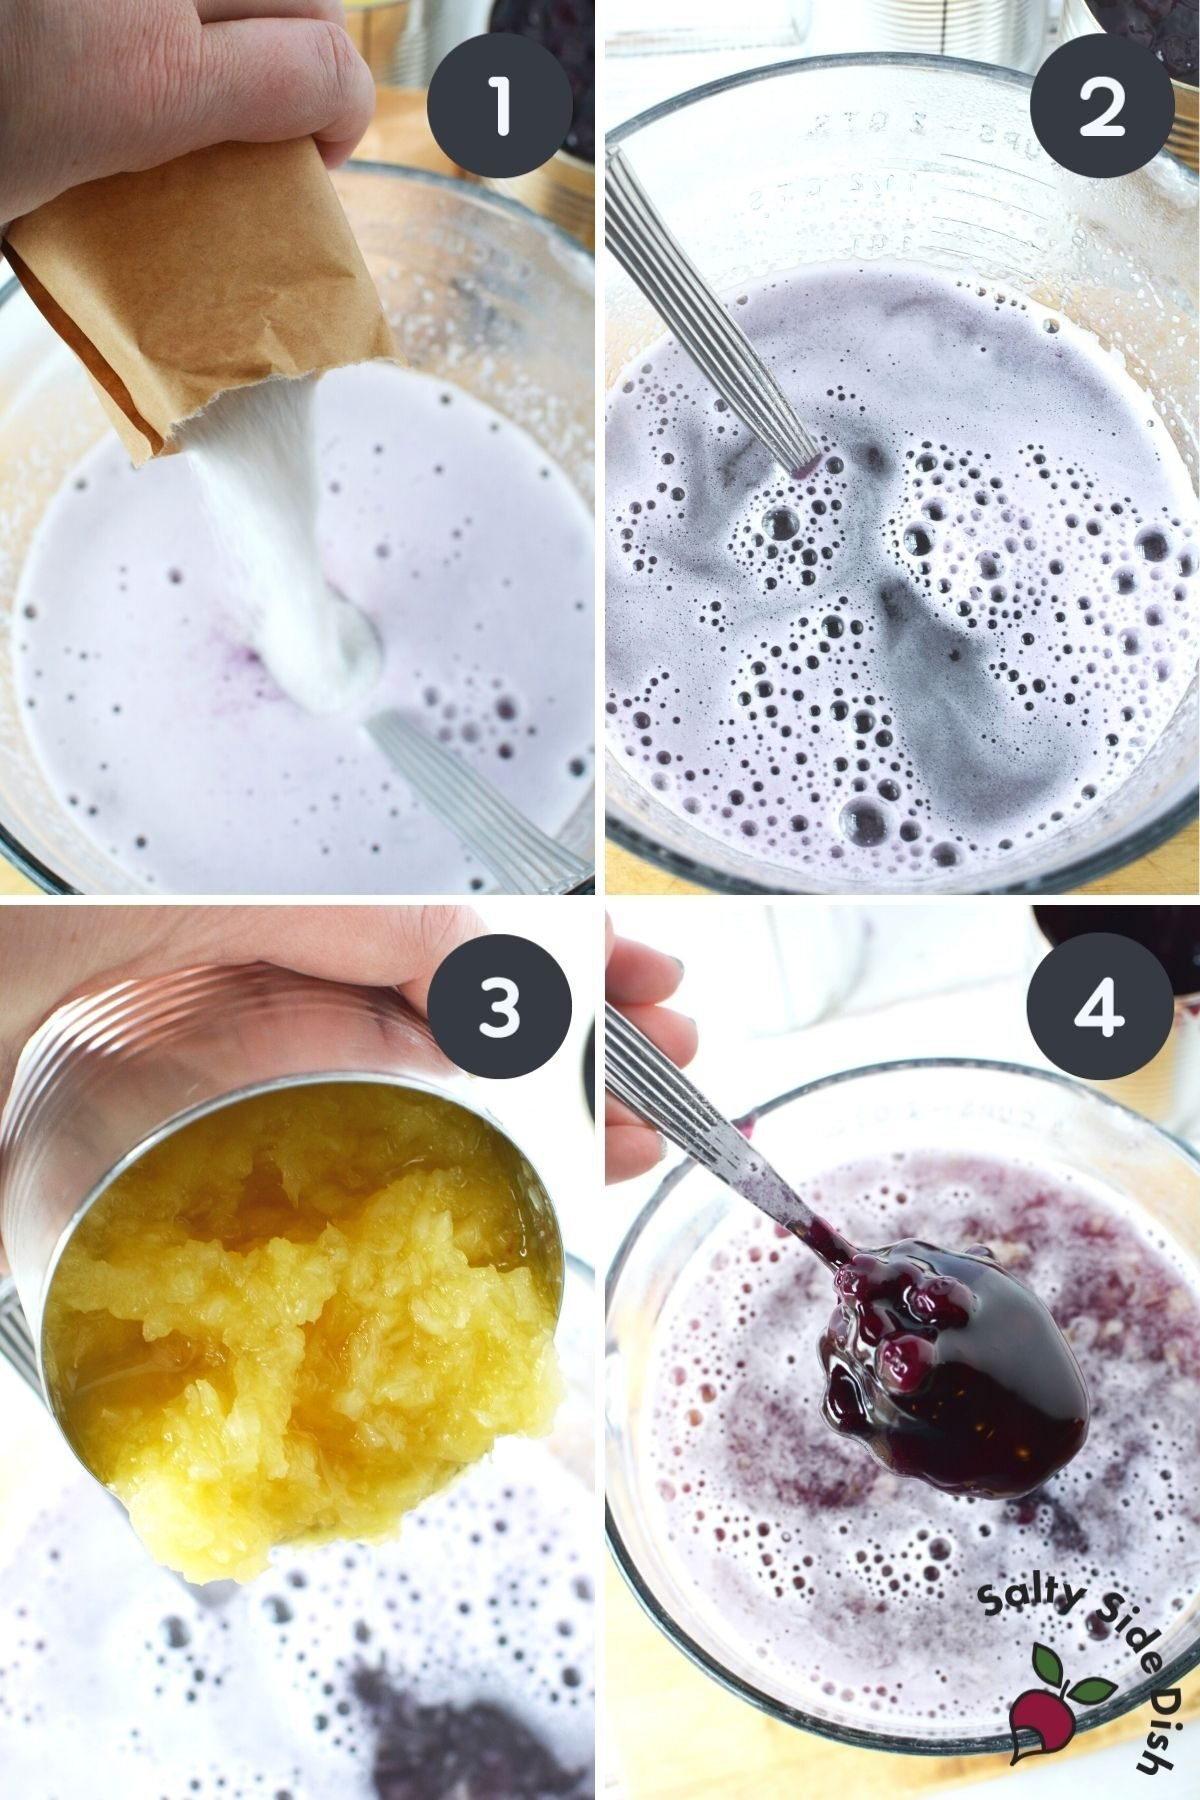 step by step on how to make blueberry salad recipe.